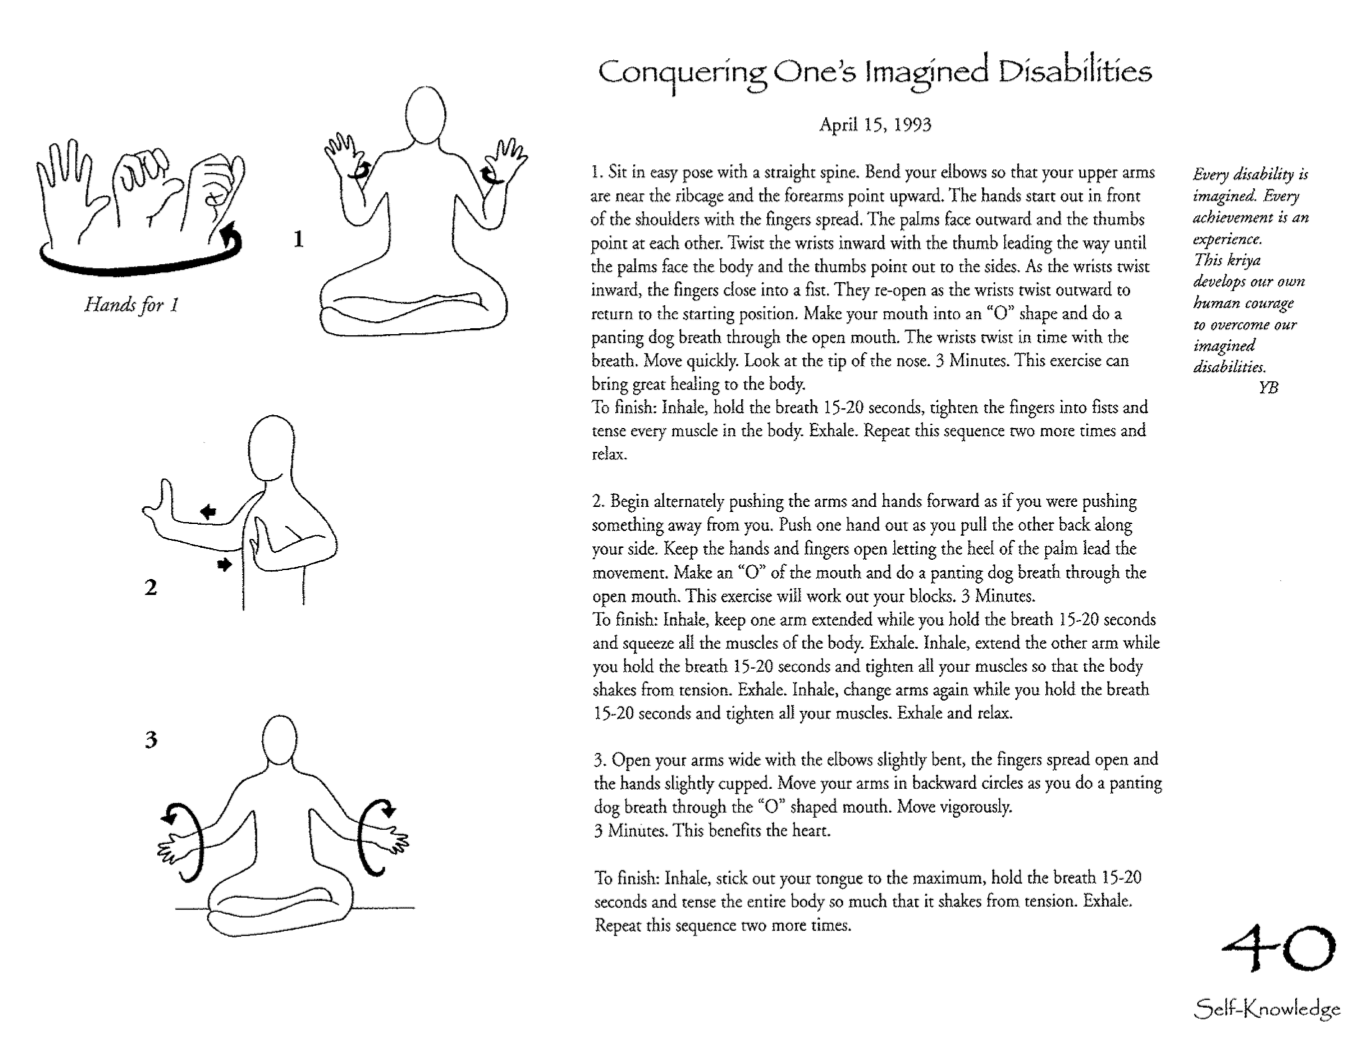 Conquering Ones imagined disabilities